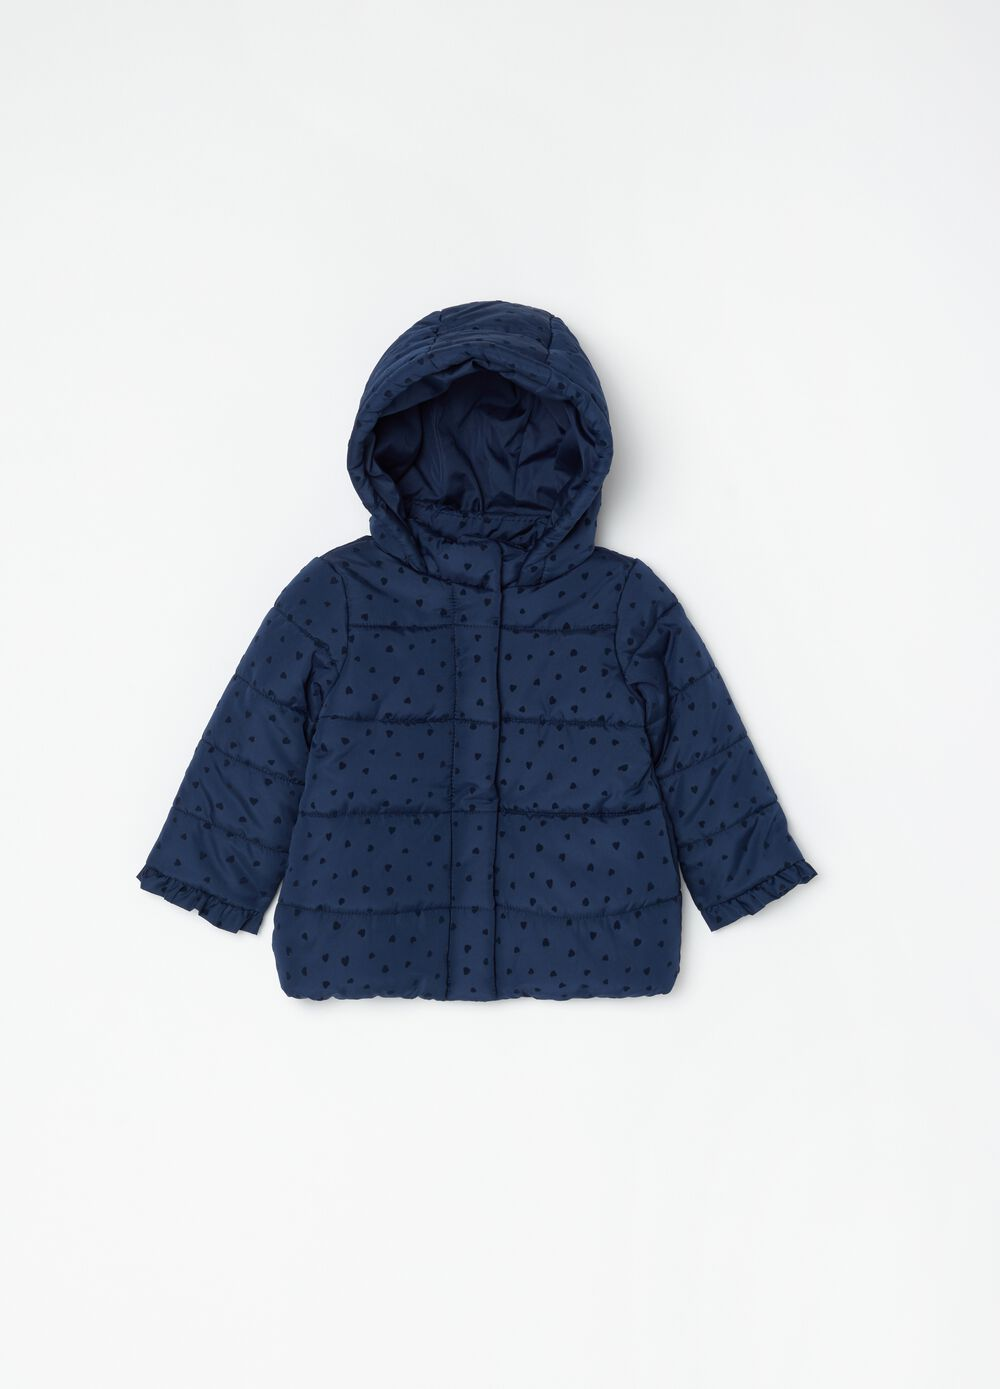 Padded jacket with micro hearts pattern